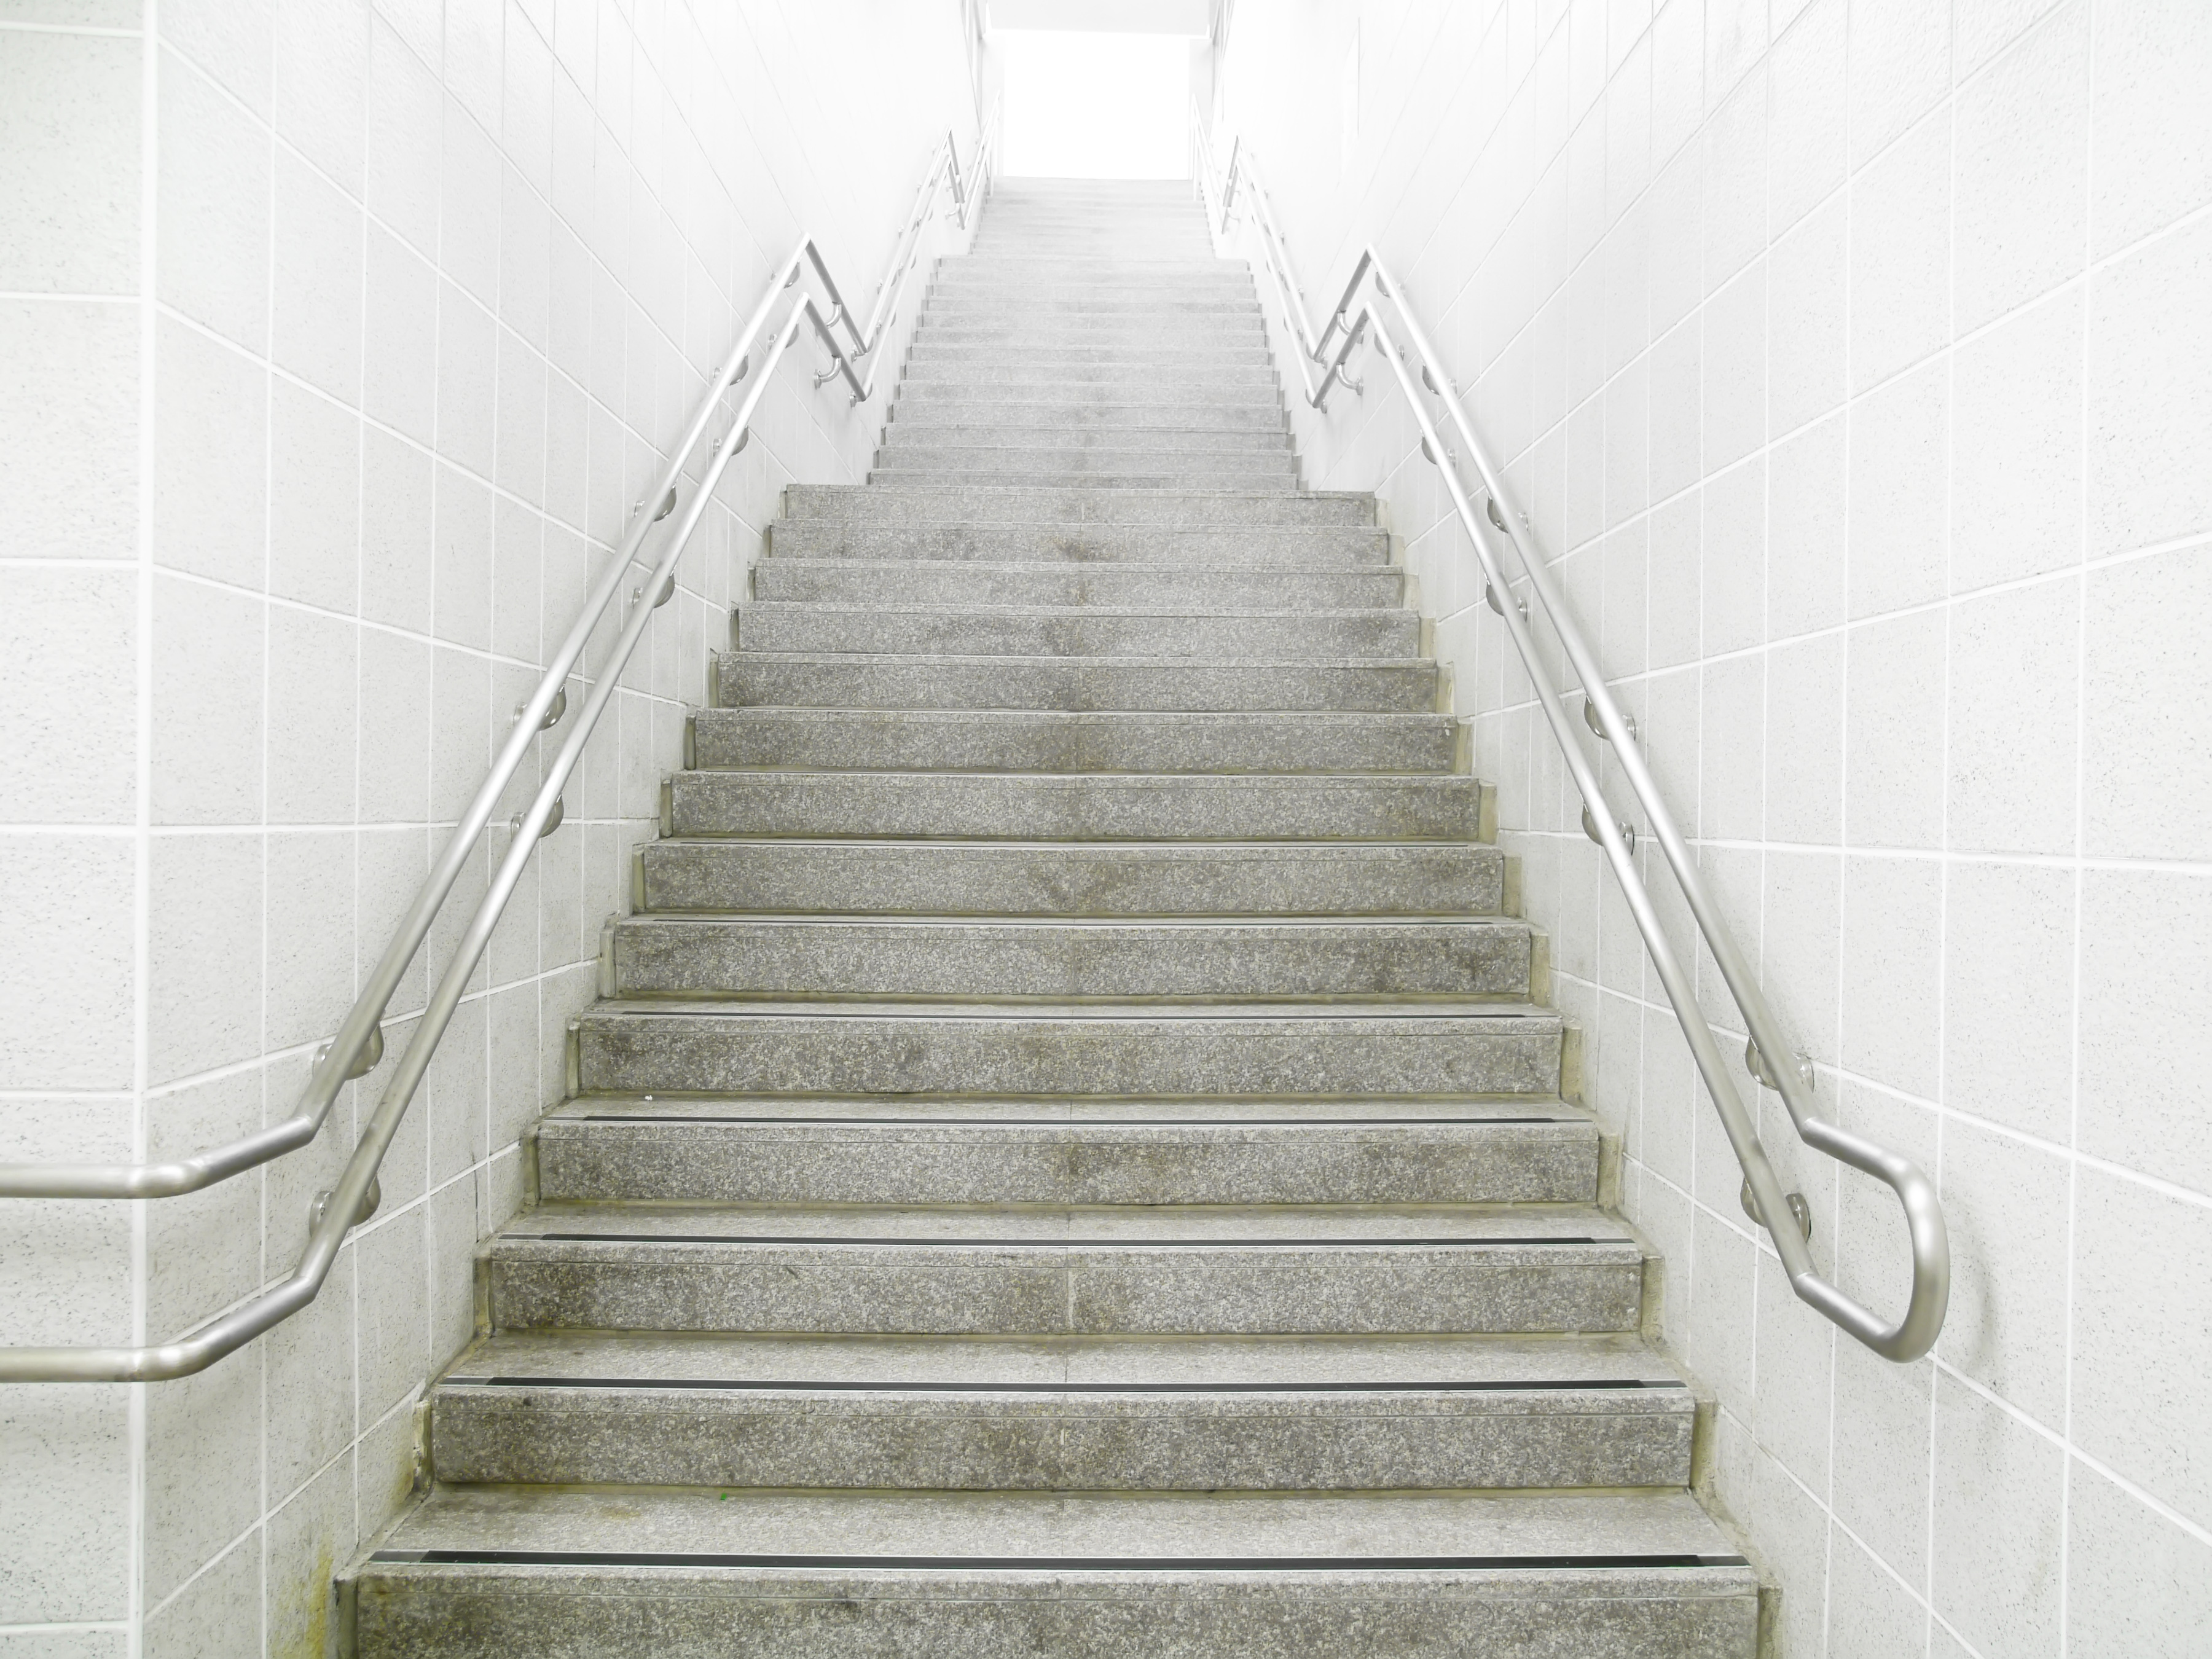 How to help prevent falls at your caregiving organization